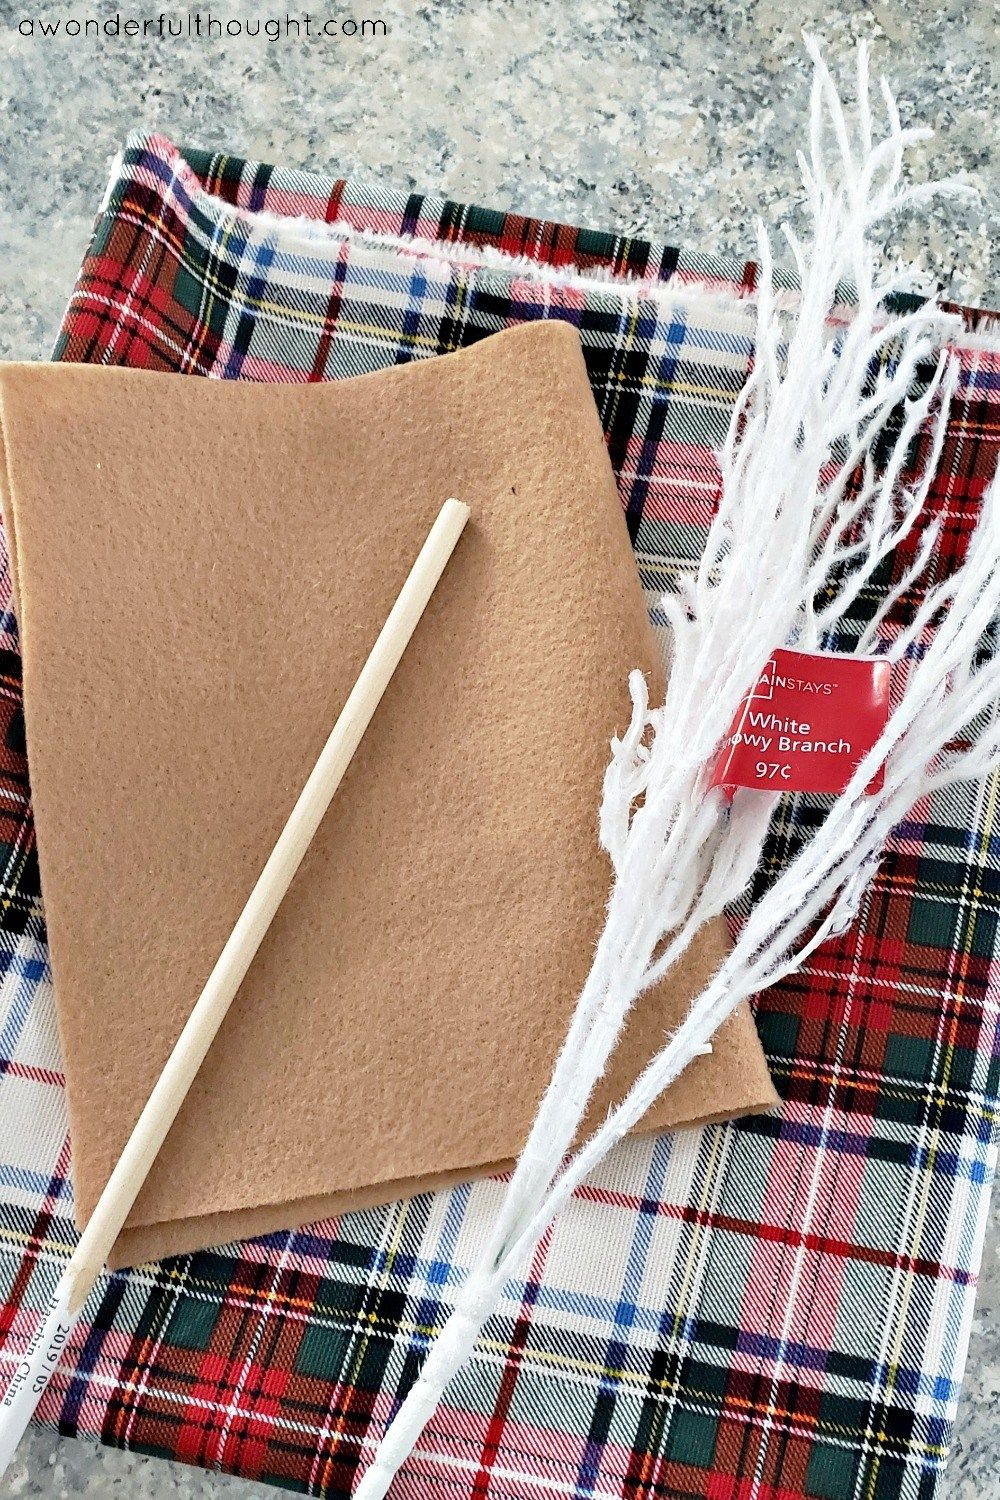 DIY Plaid Fabric Reindeer - A Wonderful Thought